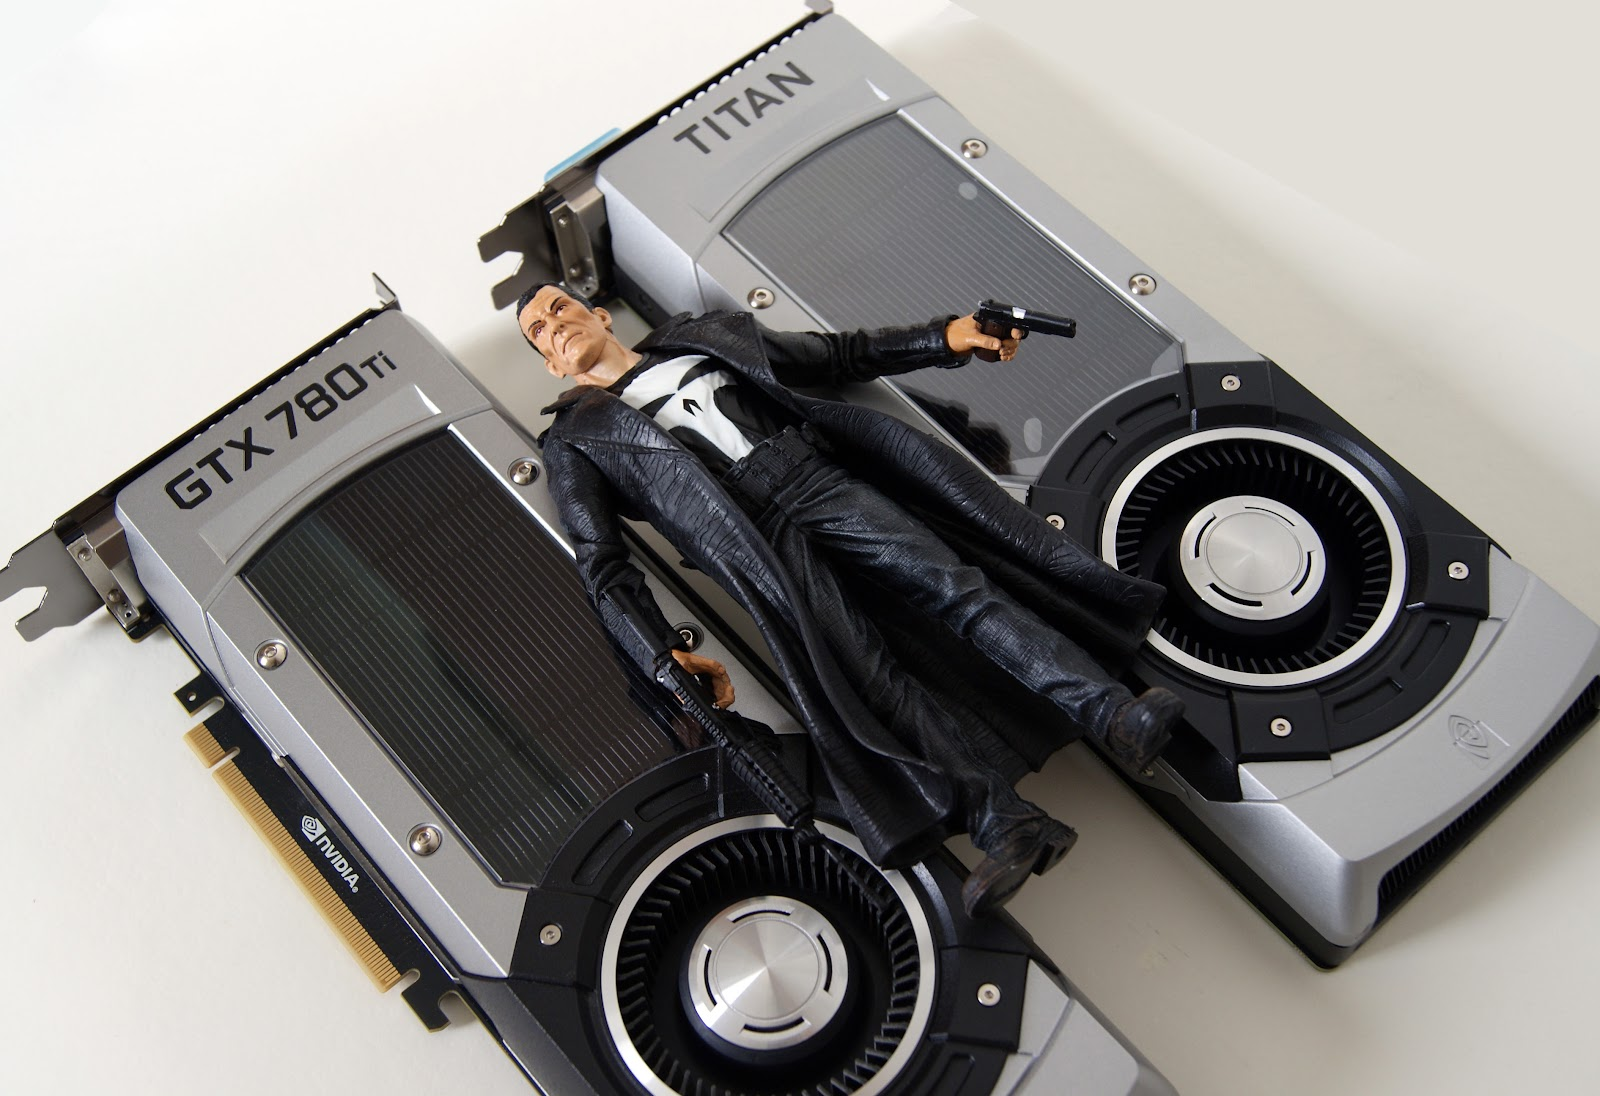 GTX TITAN Black vs GTX 780 Ti